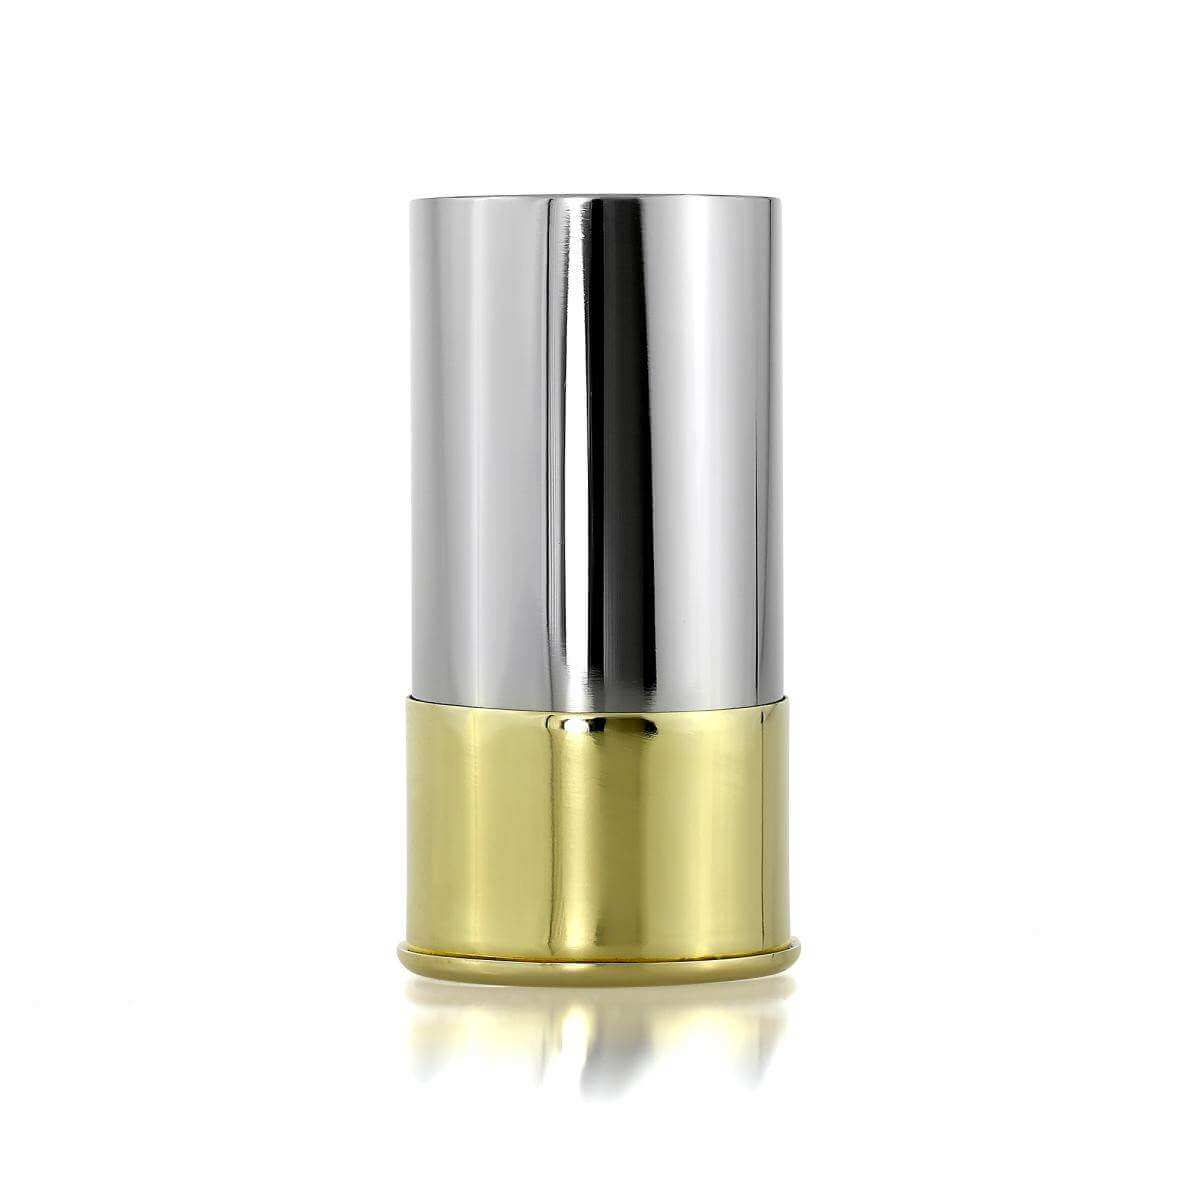 Engravable Stainless Steel Shot Gun Cartridge Spirit Measure